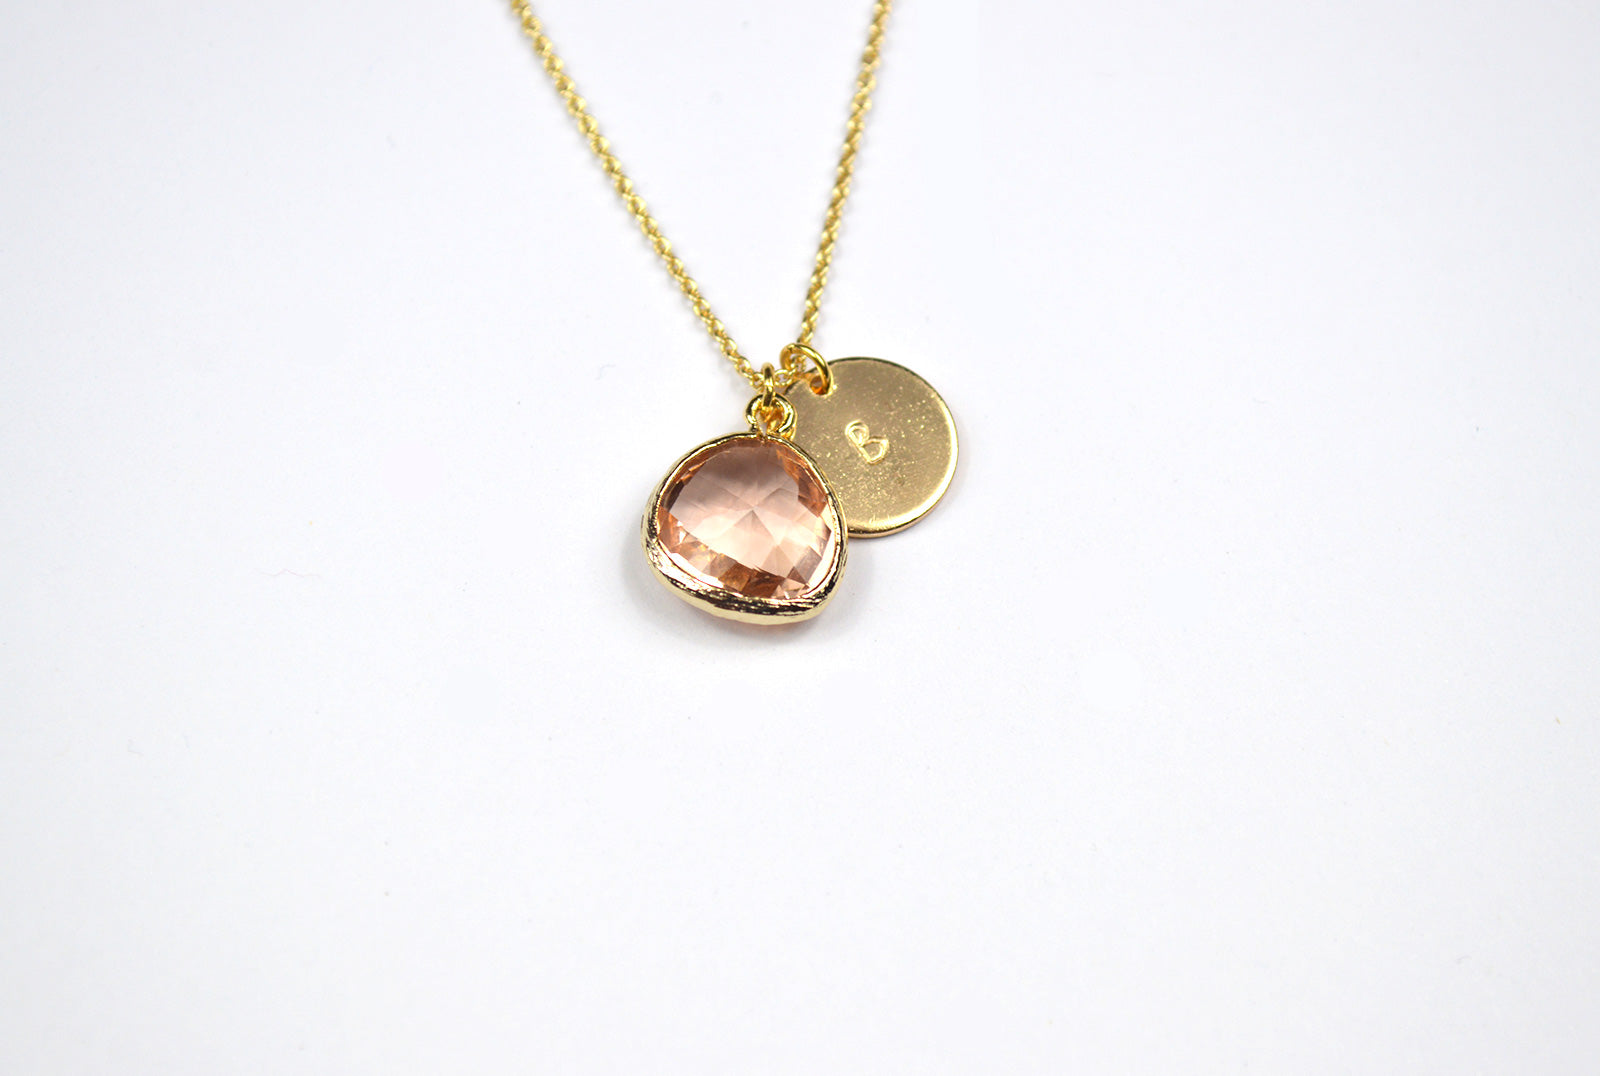 Personalised Peach Pendant Gold Plated Necklace